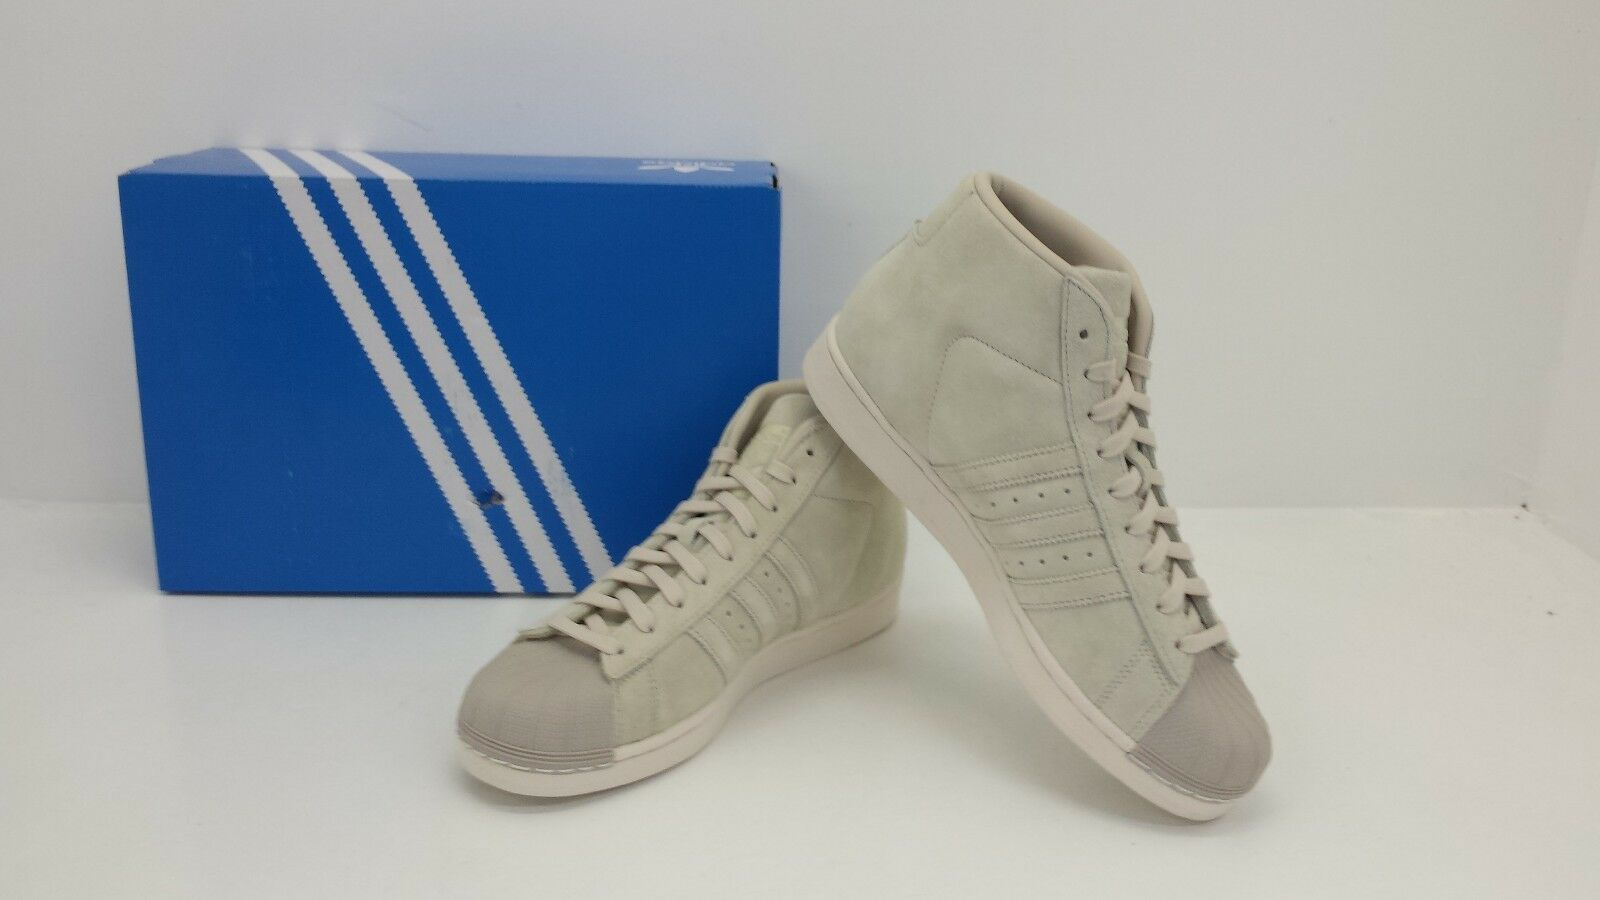 Adidas Originals Men's Pro Model BRAND CBrn/CBlk/Wht Suede BZ0213 - BRAND Model NEW IN BOX 3bd102